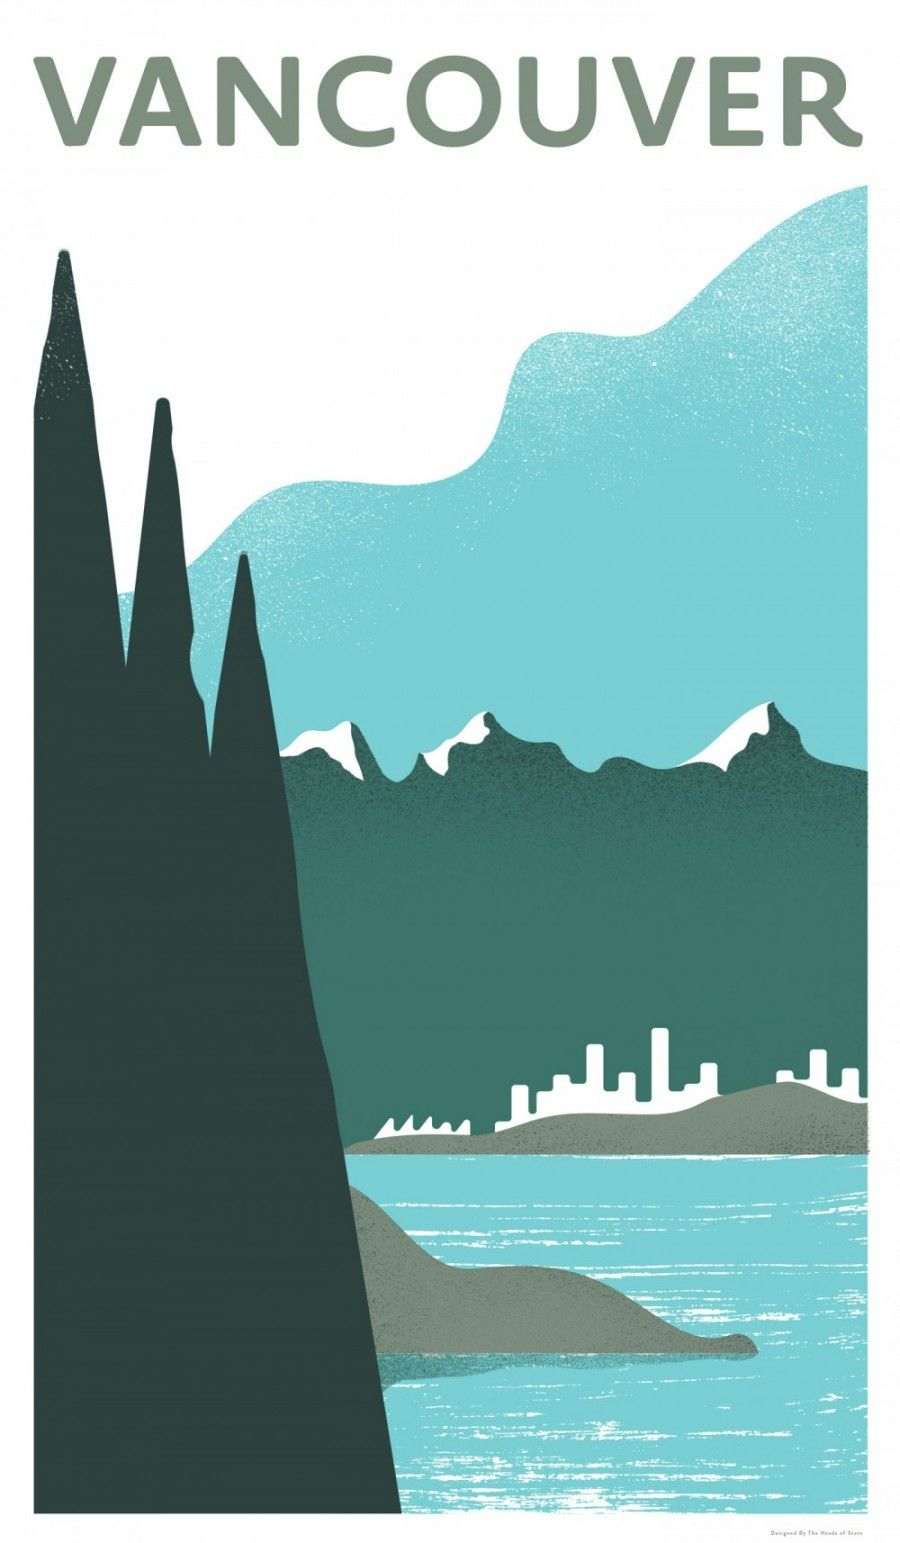 Vancouver Poster Google Search Posters Canada Travel Posters Retro Travel Poster